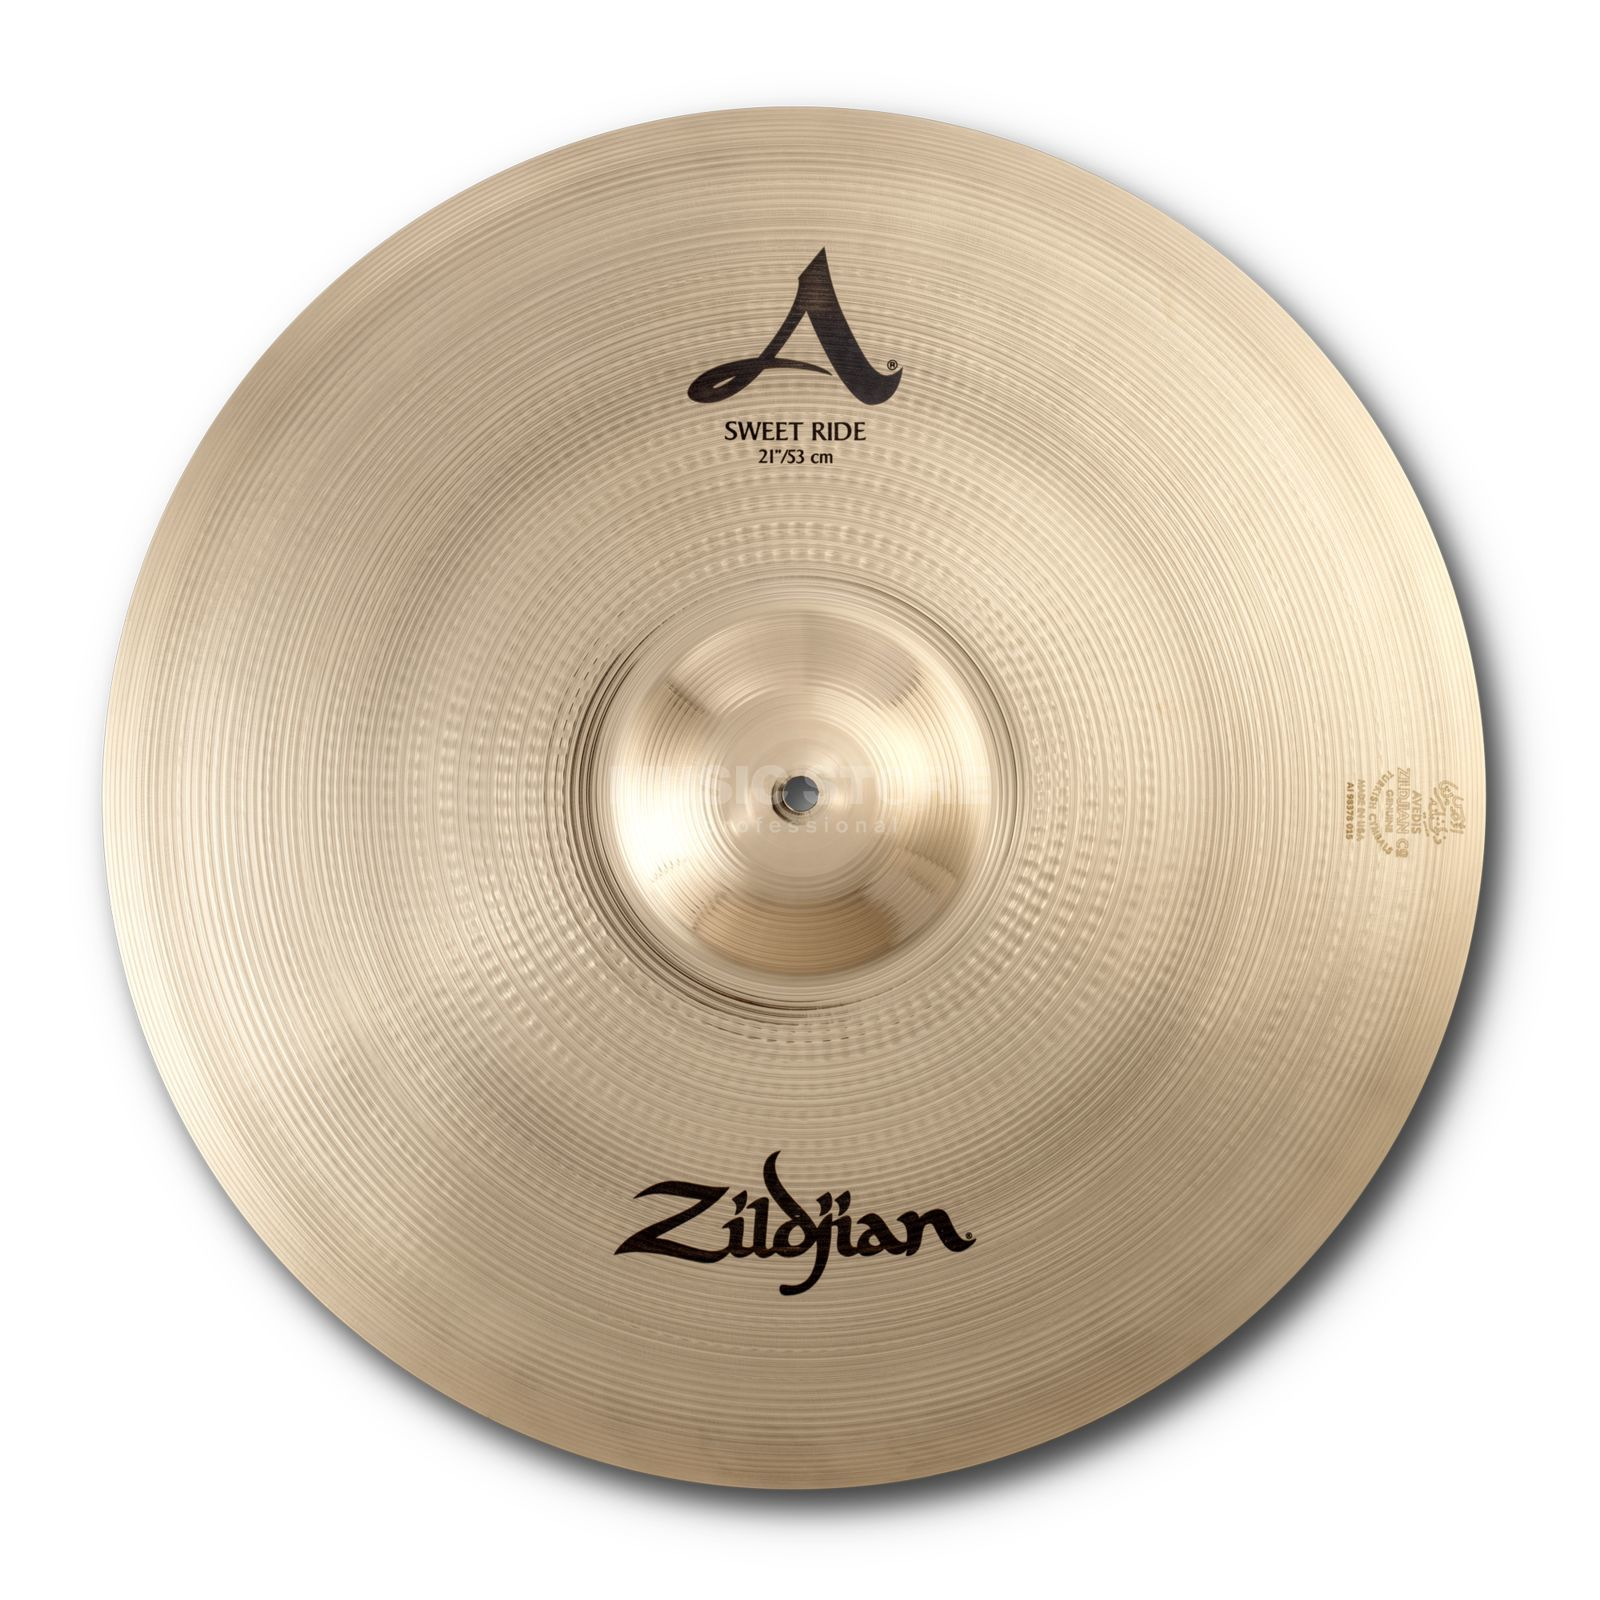 "Zildjian A' Zildjian Sweet Ride 21"", Brilliant Finish Produktbillede"